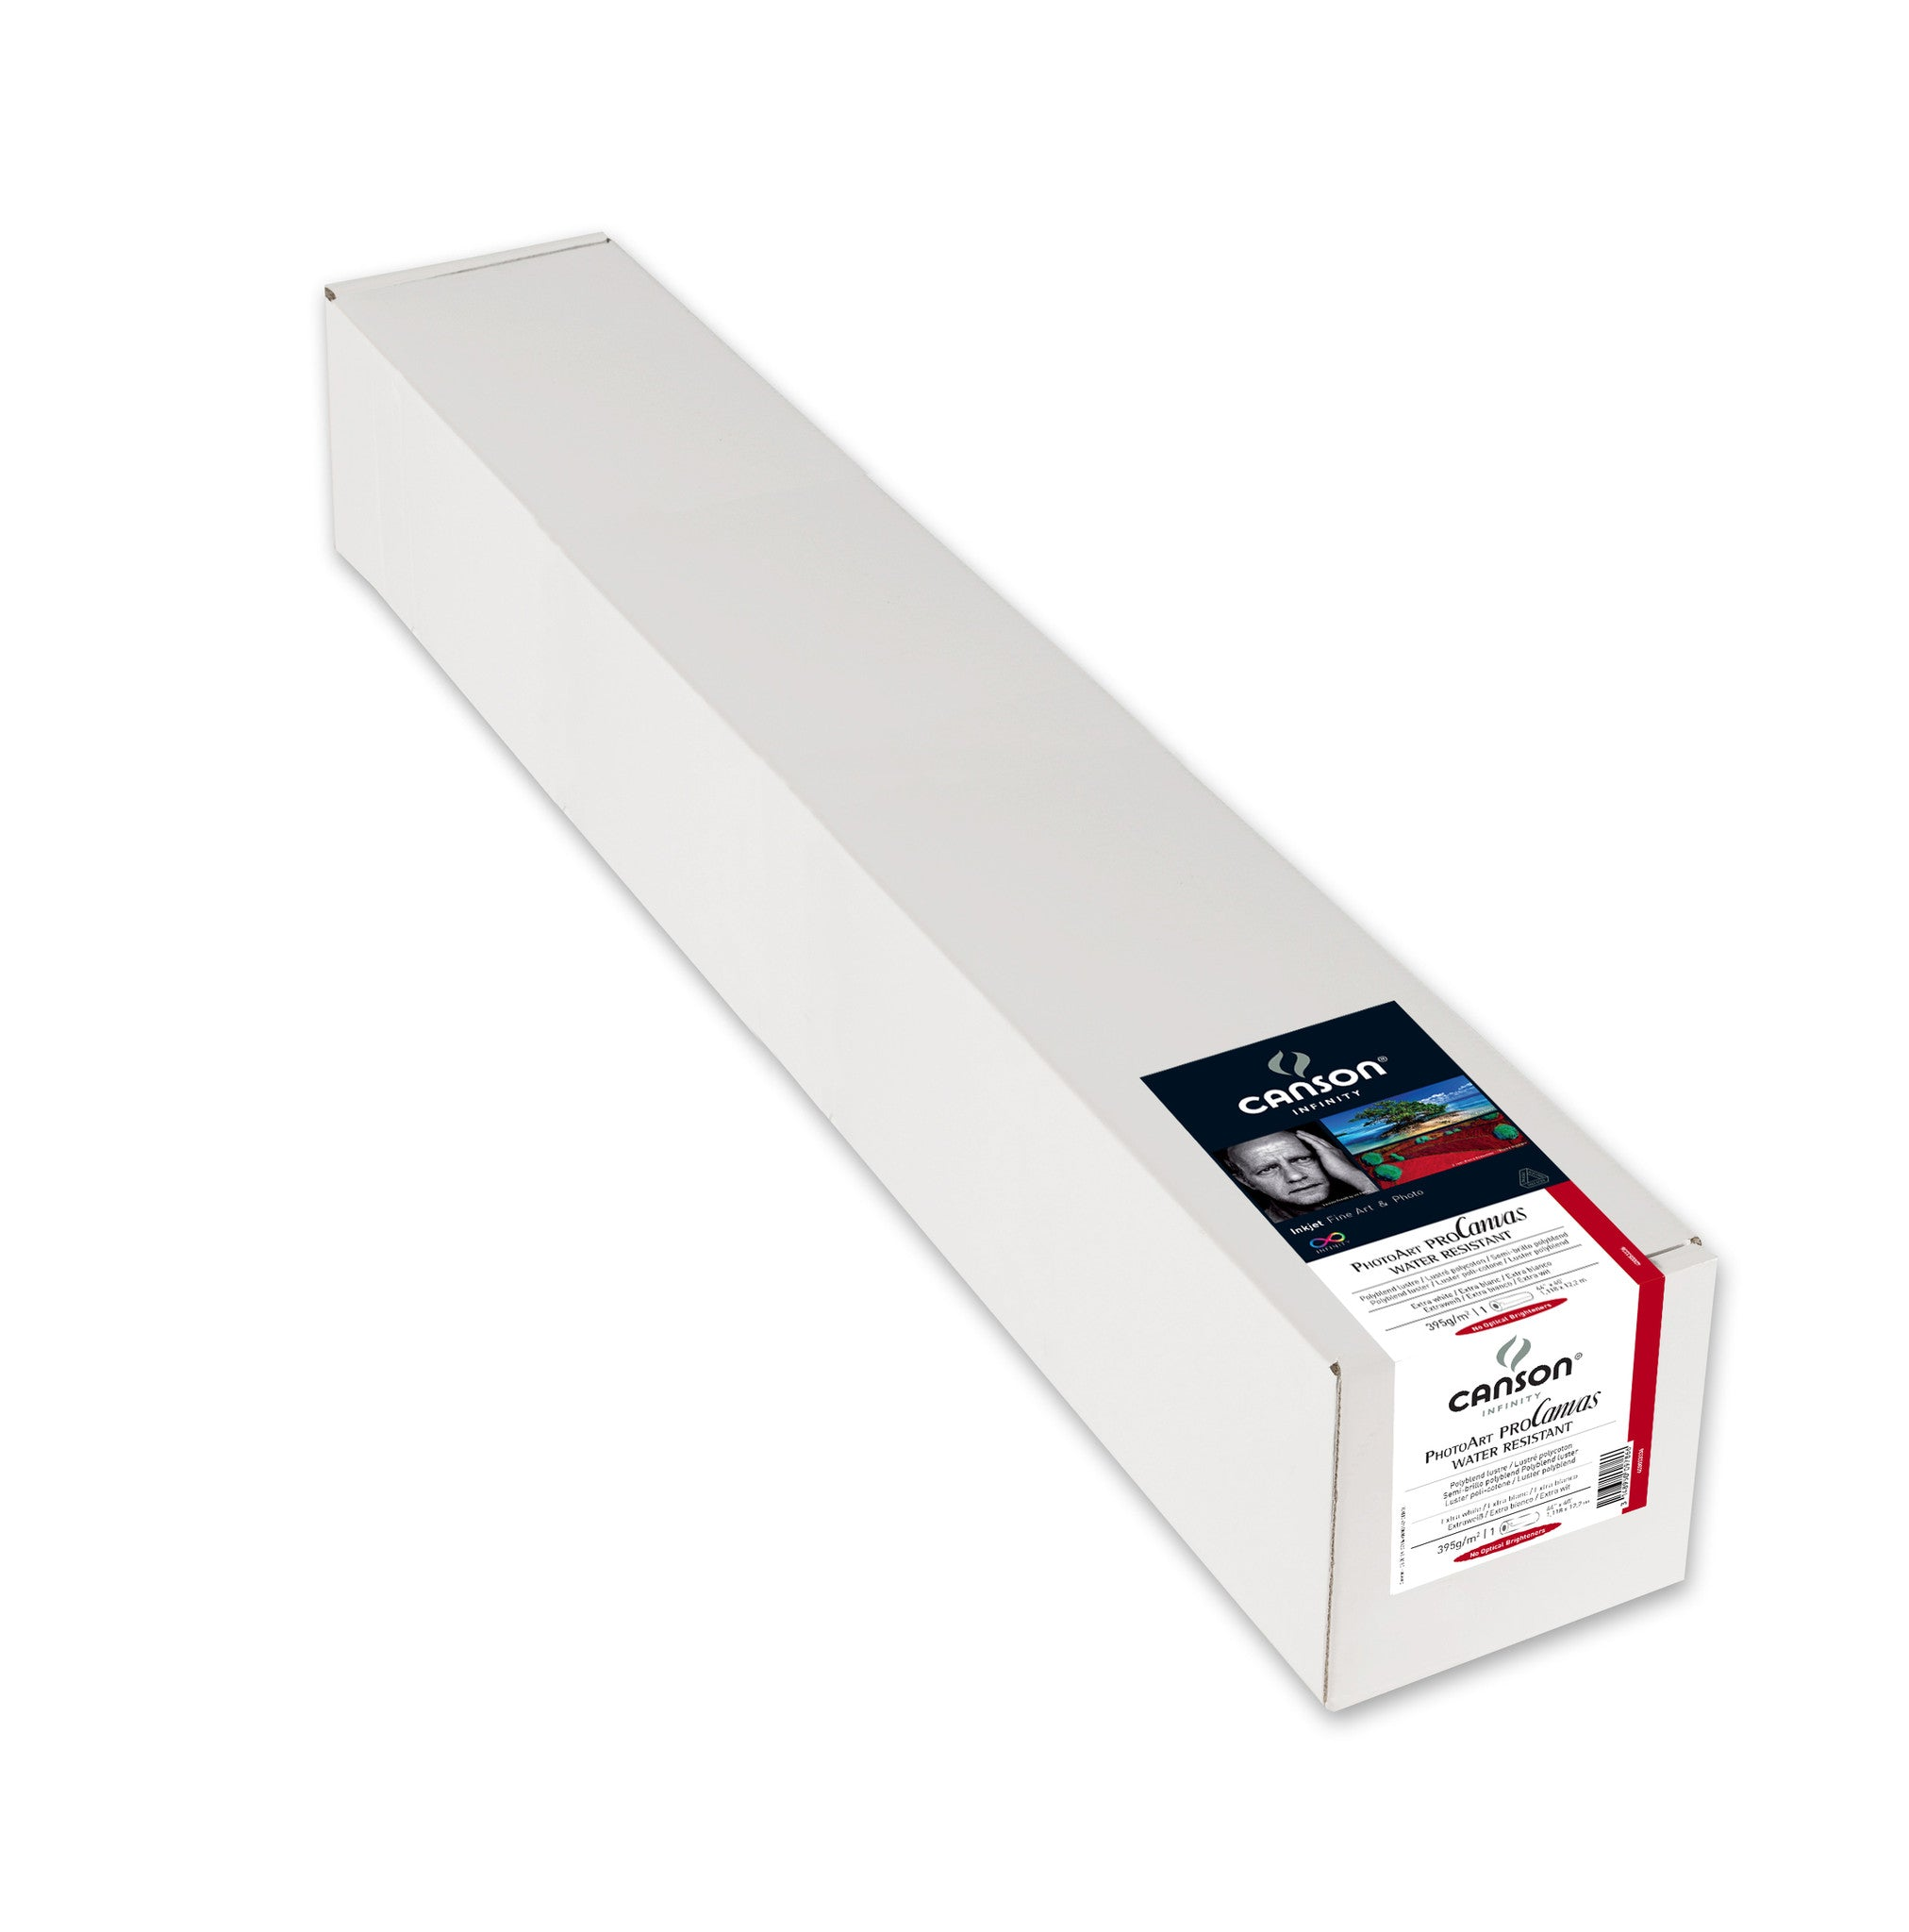 "Canson Infinity PhotoArt Pro Canvas WR Luster - 395gsm - 44""x40' roll"